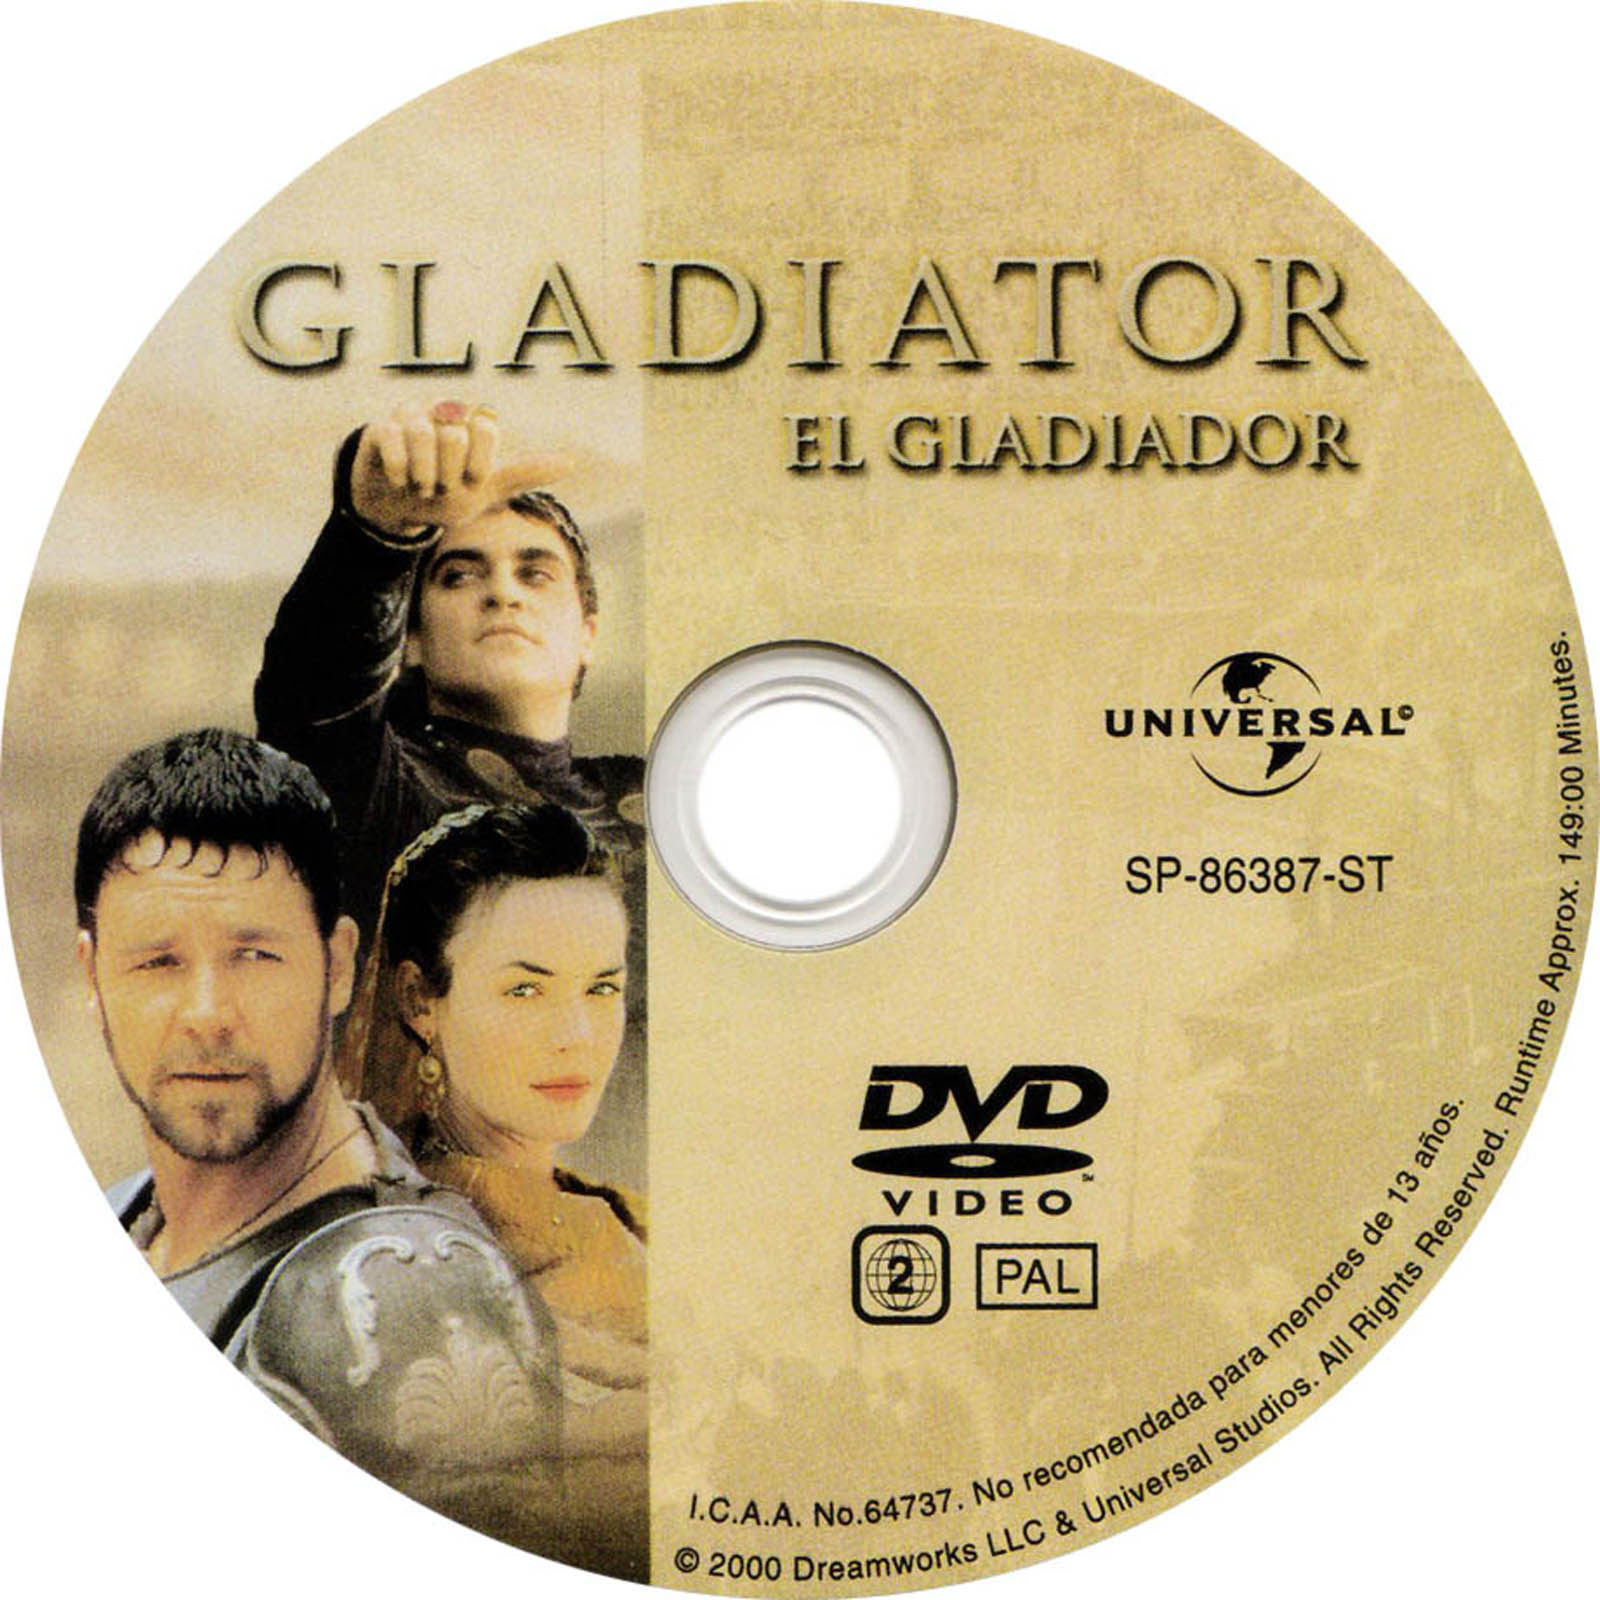 gladiator movie vs history View notes - historical accuracy in the gladiator from history world hist at cedar bluffs high school historical accuracy in the gladiator the movie gladiator does a fairly good job representing.